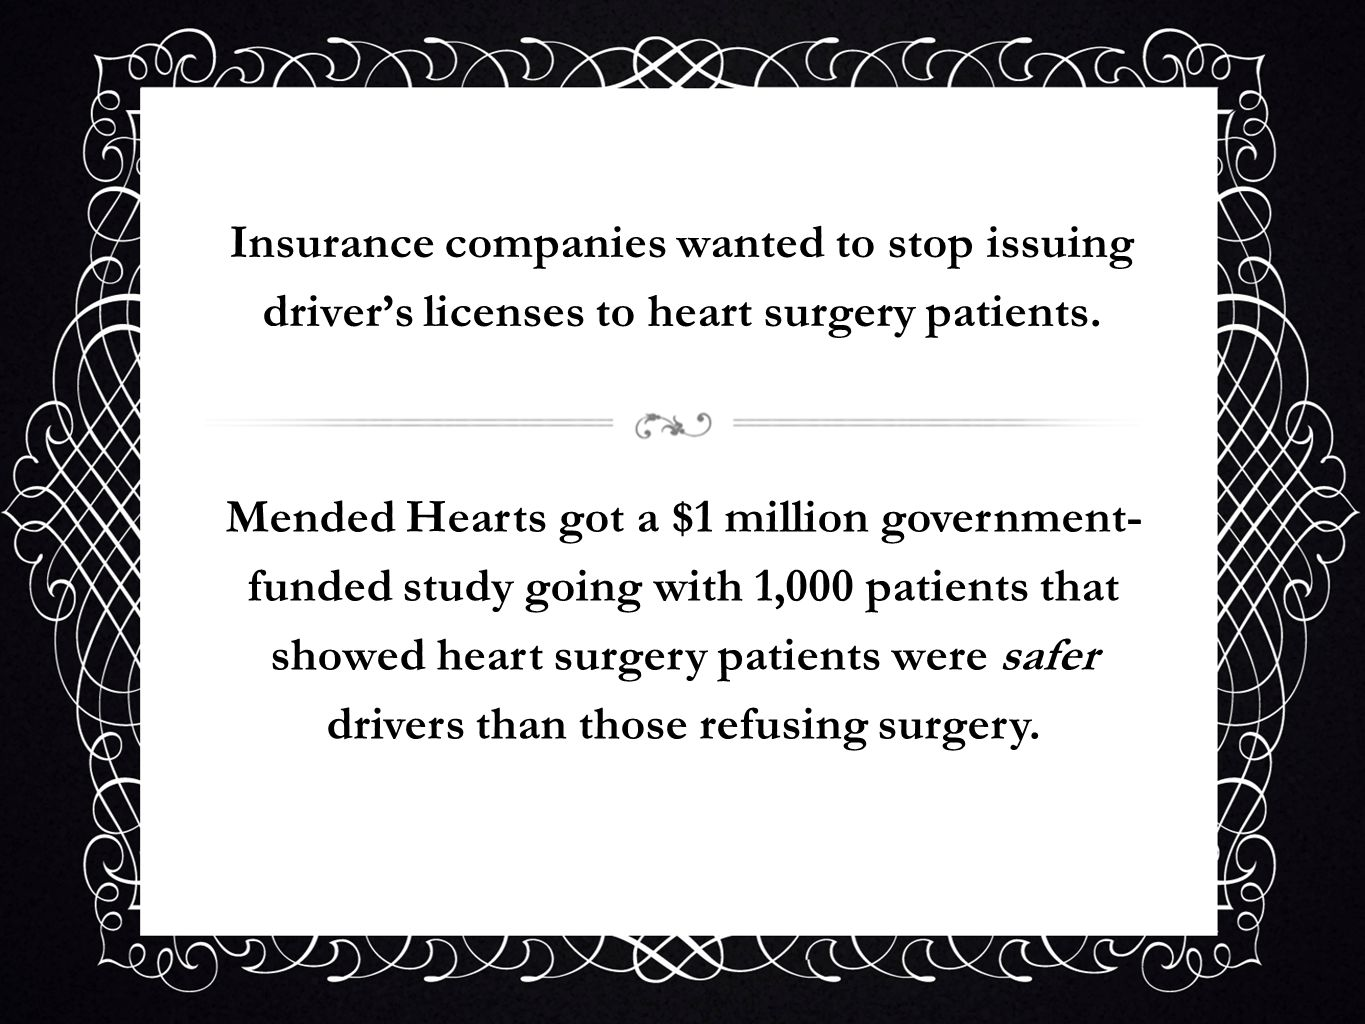 Insurance companies wanted to stop issuing driver's licenses to heart surgery patients.